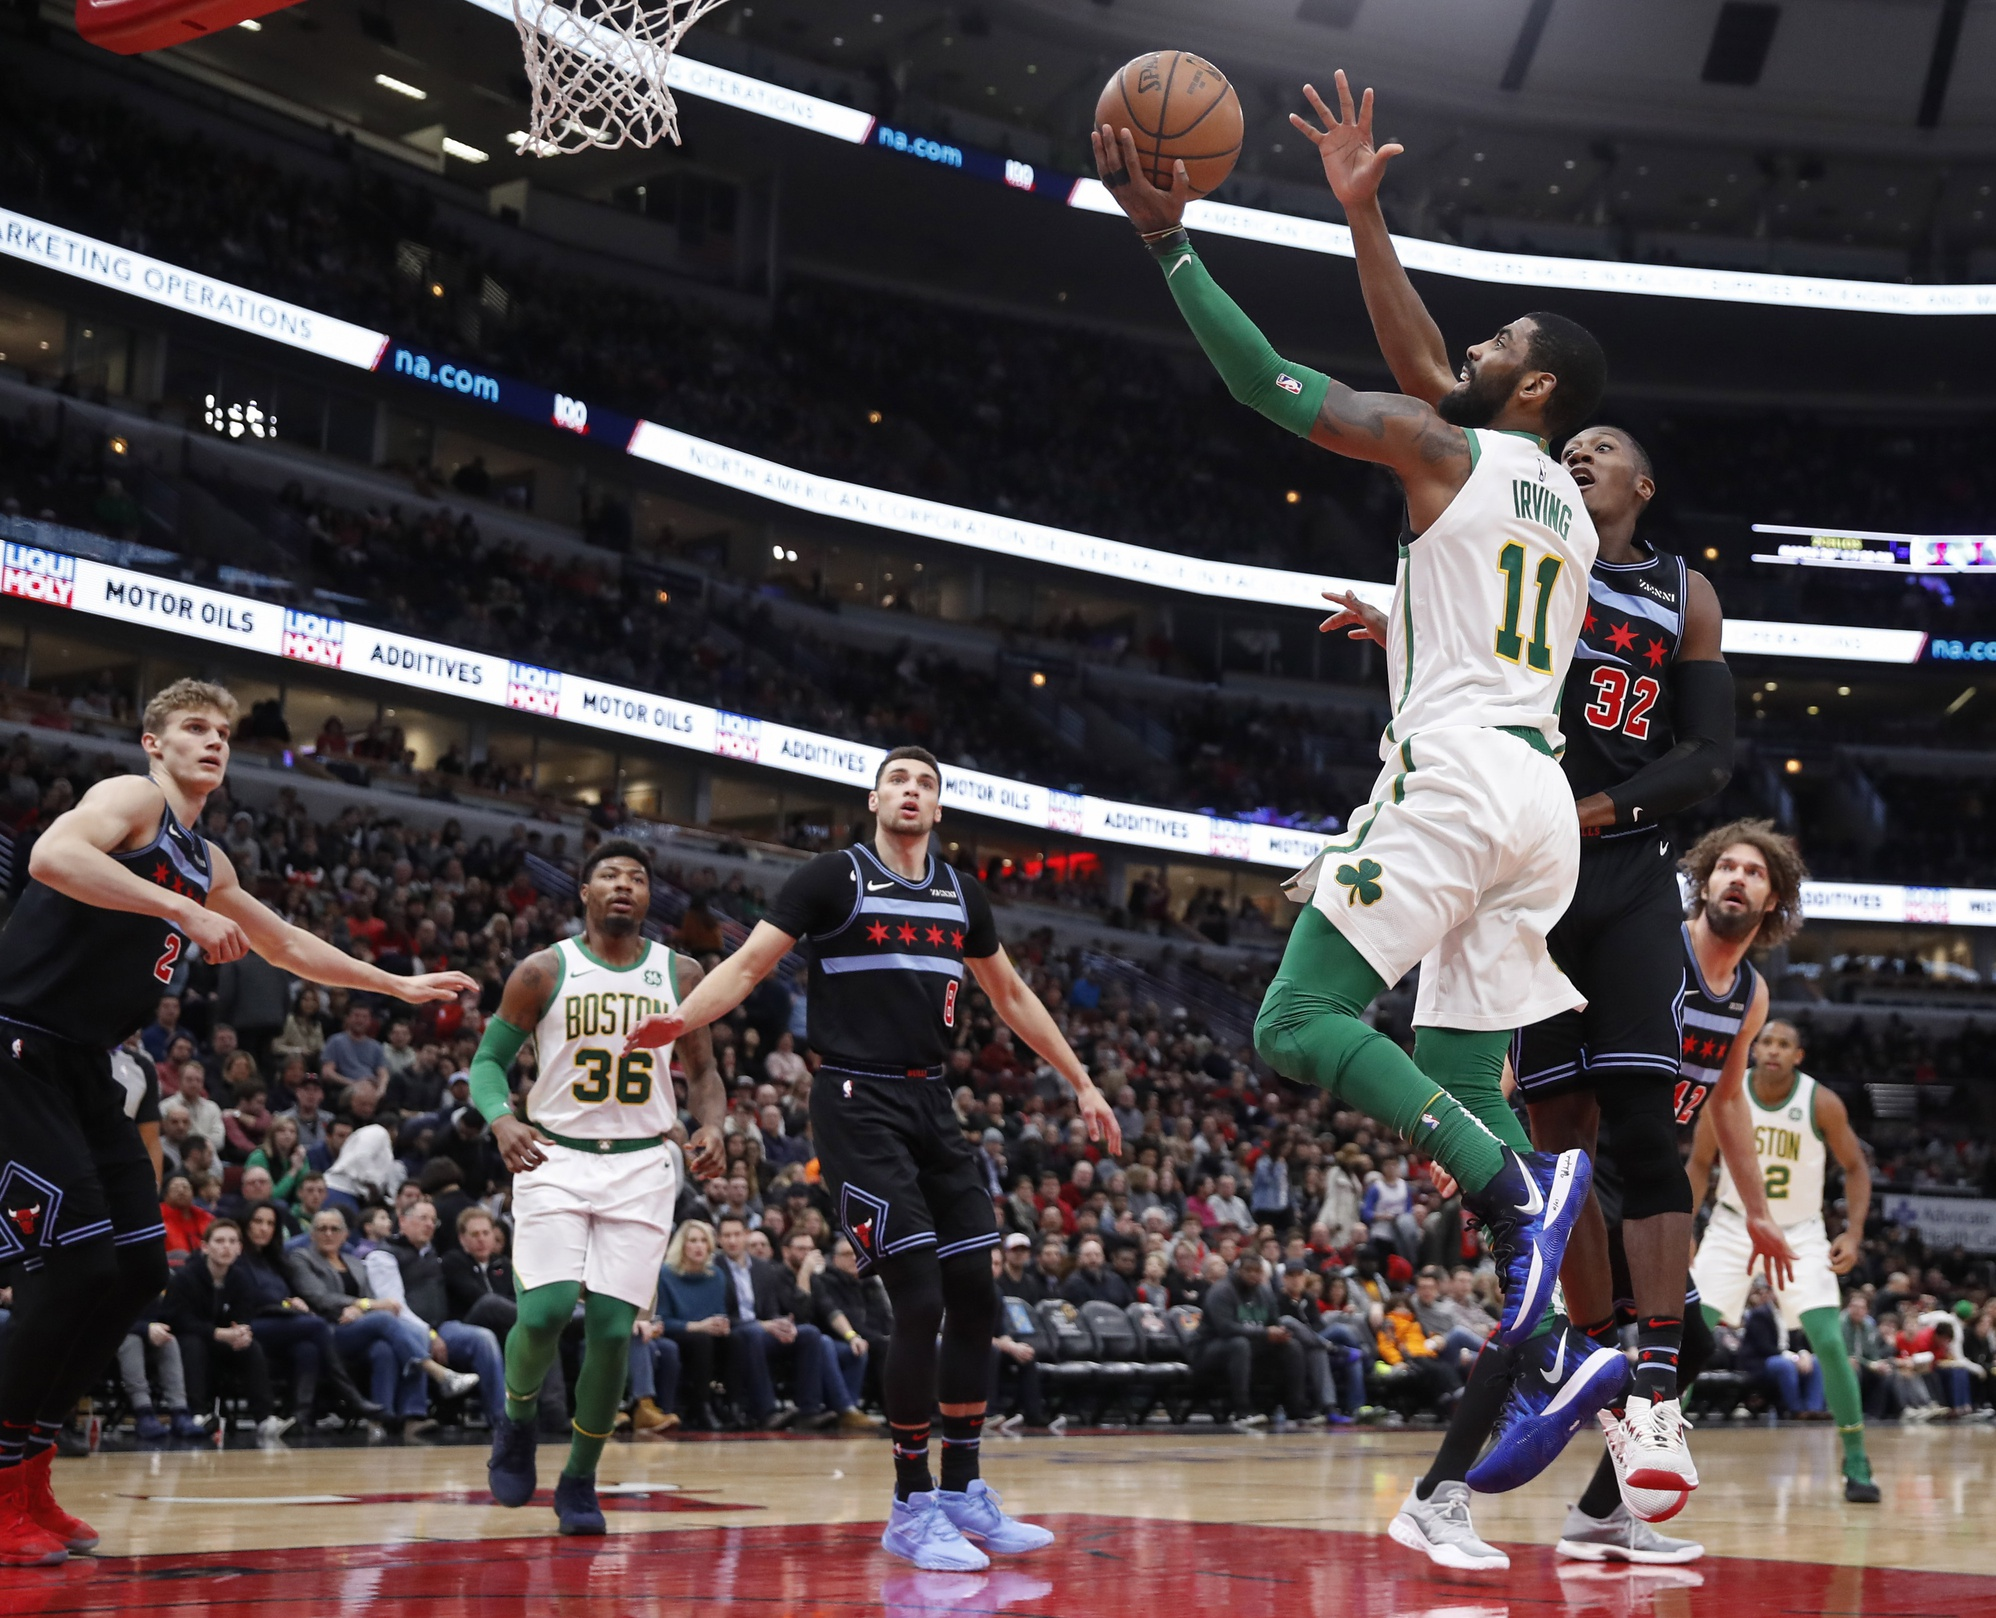 Your Morning Dump... Where Kyrie Irving has no time to wallow in the negativity